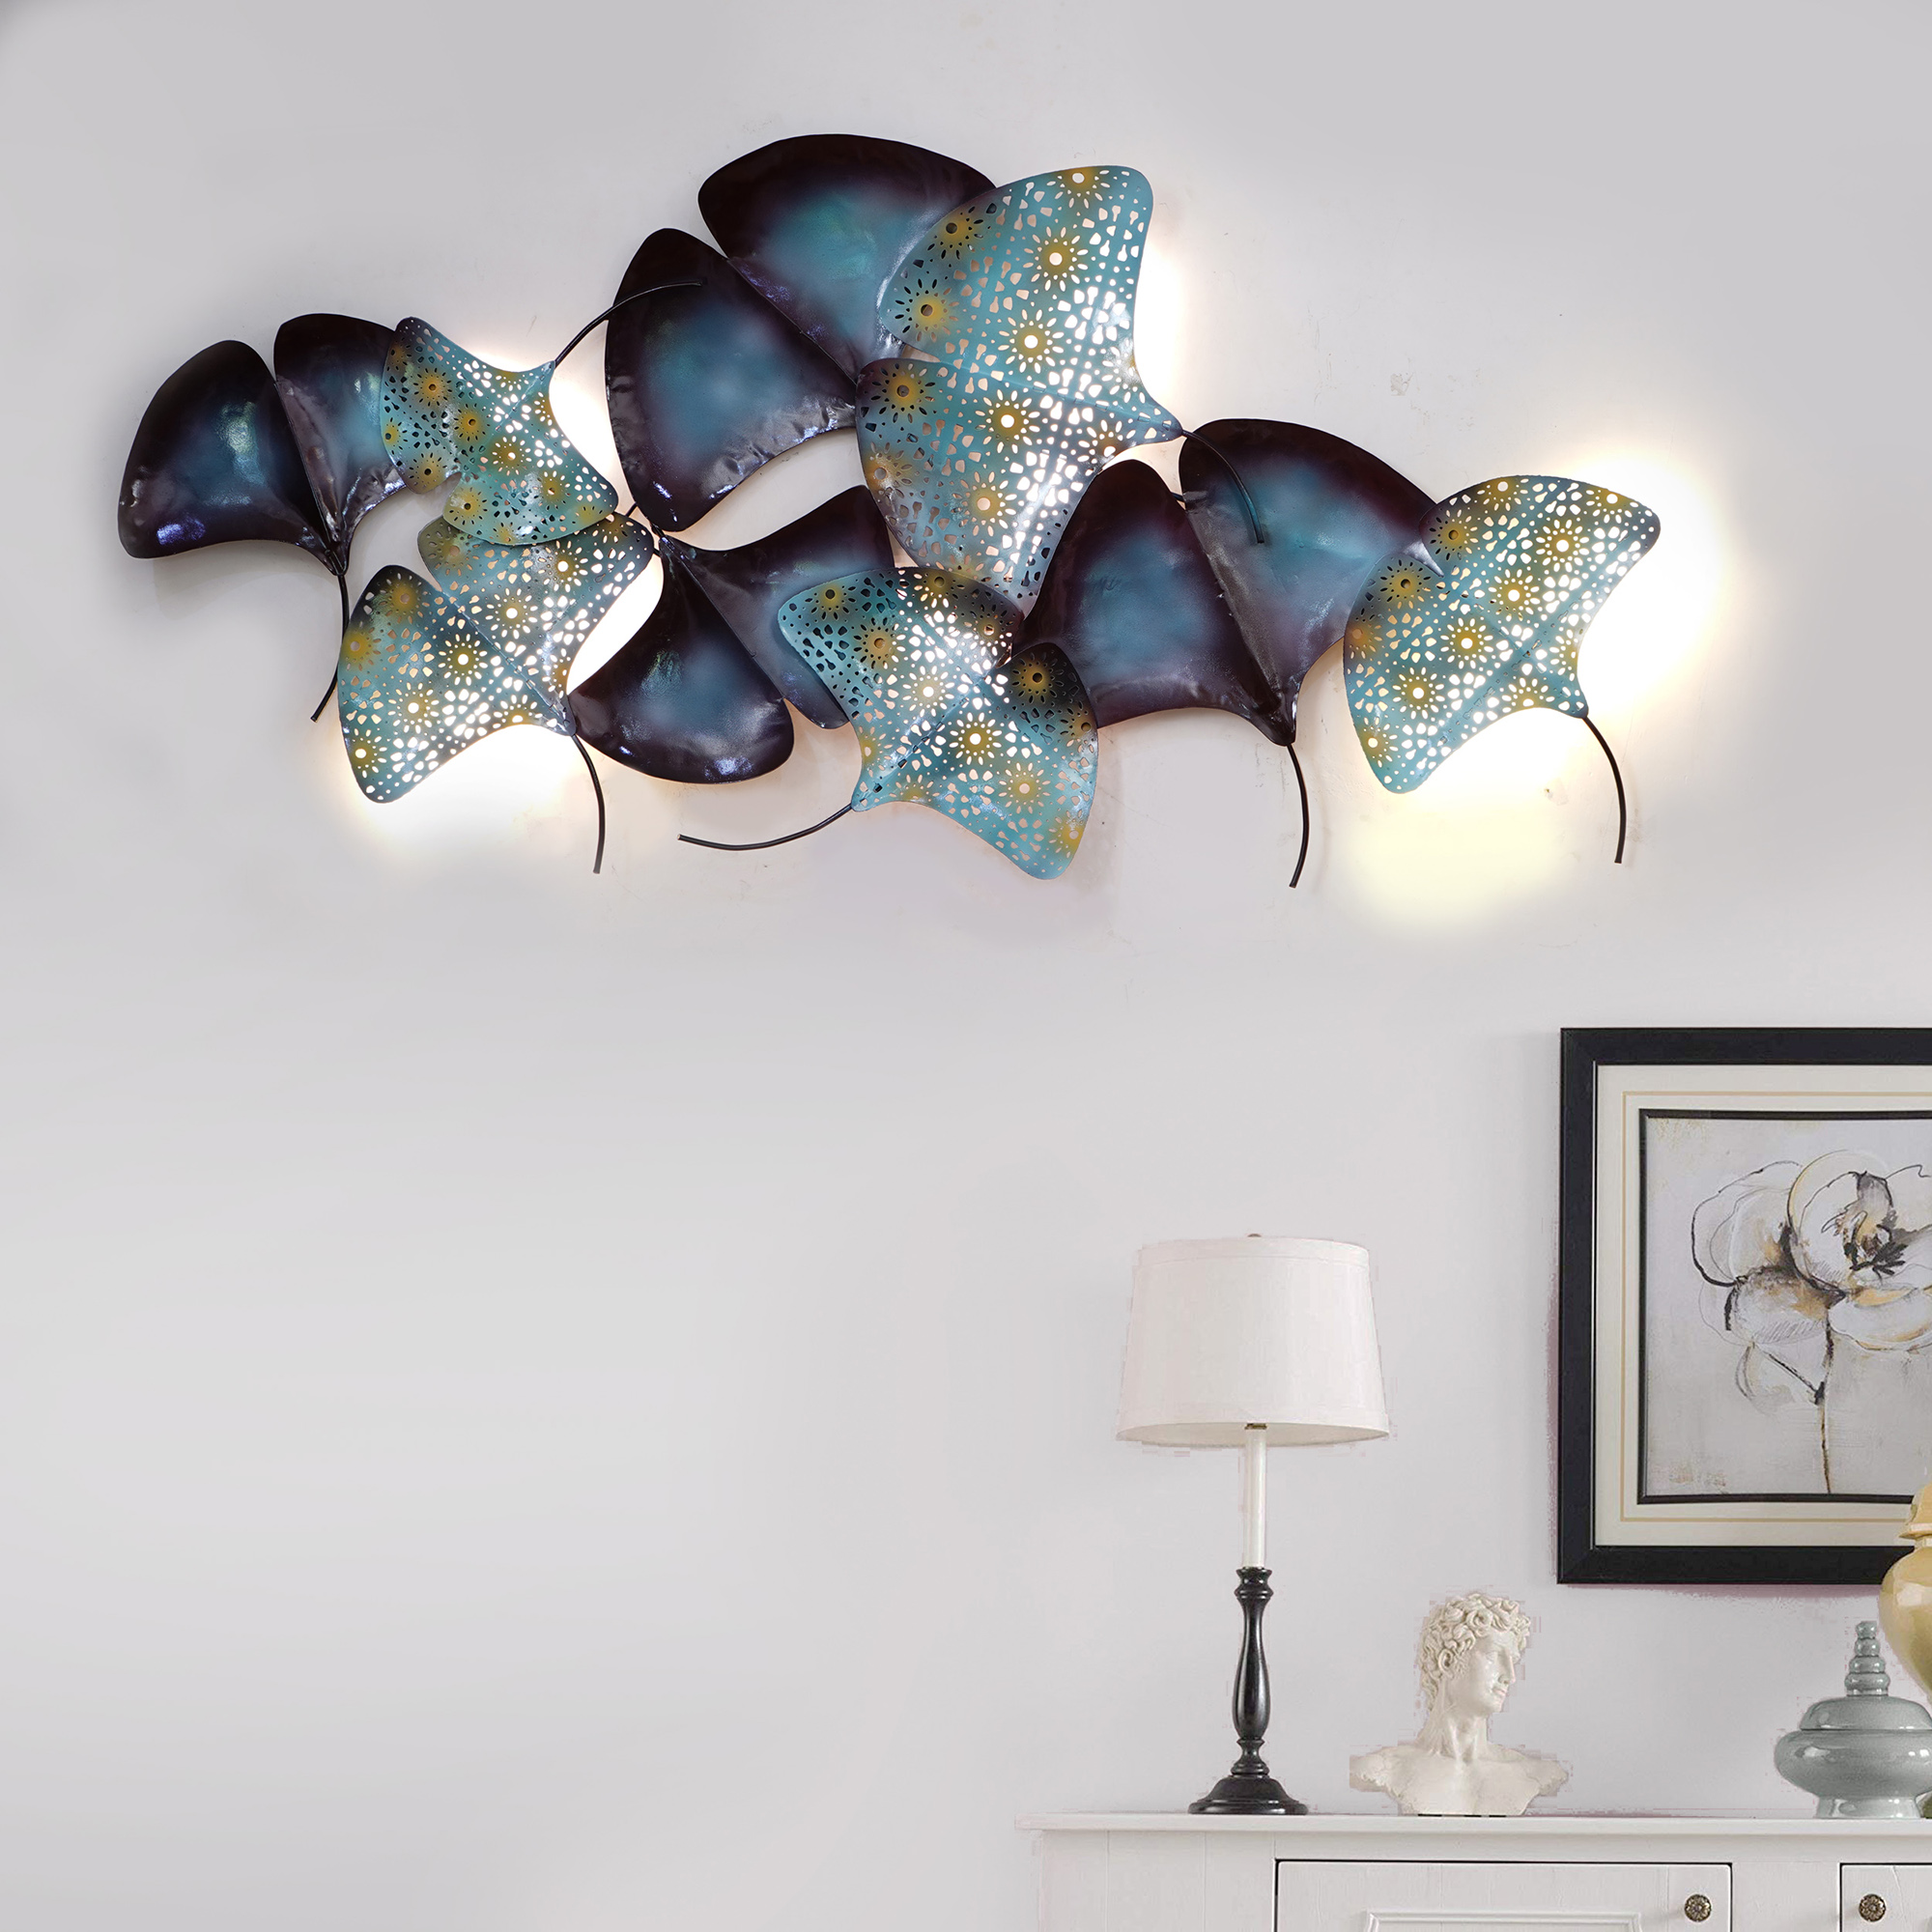 Abstract Colorful Leaves Collection Handcrafted Iron Wall Hanging with Background LEDs Indian Home Decor